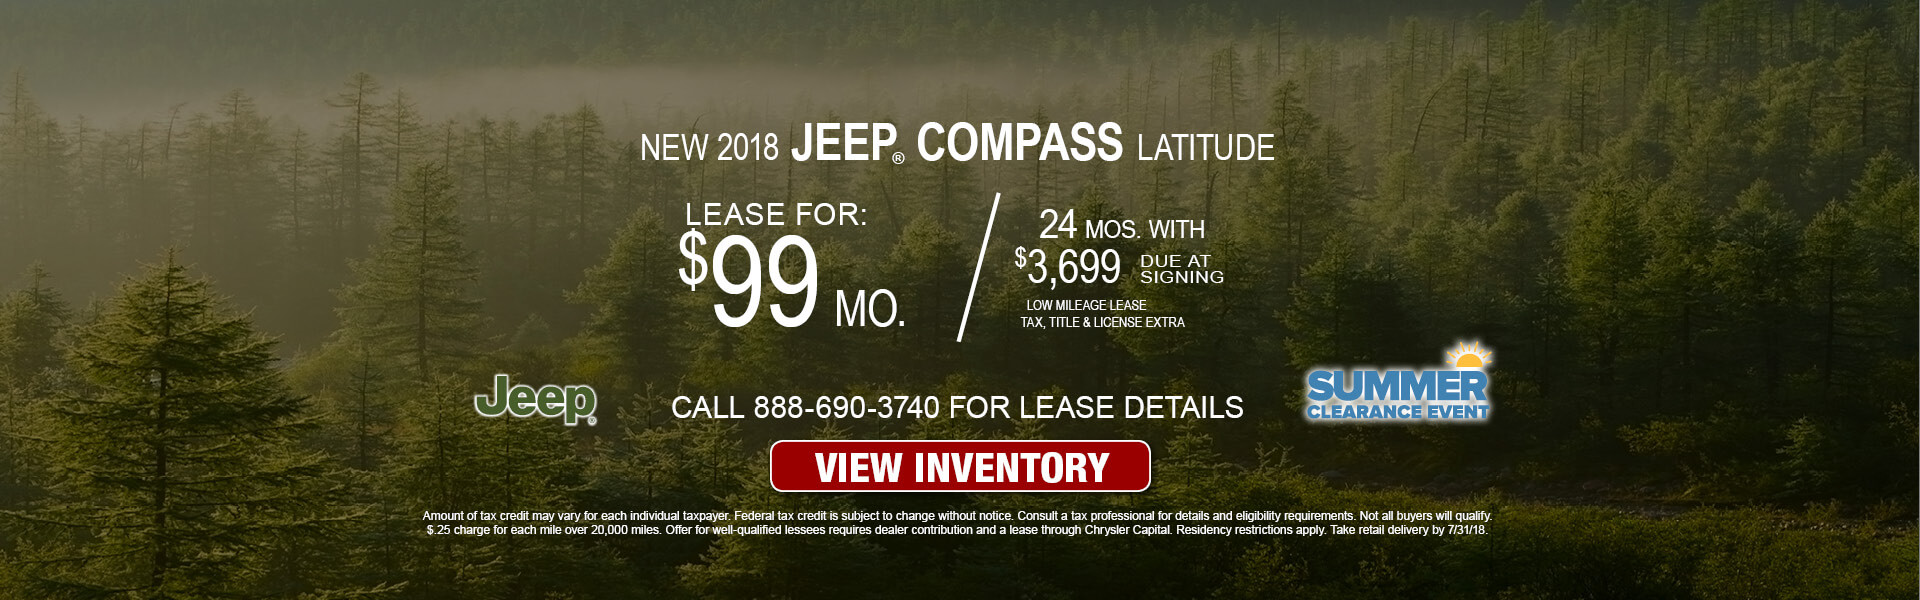 Jeep Grand Compass $99 Lease